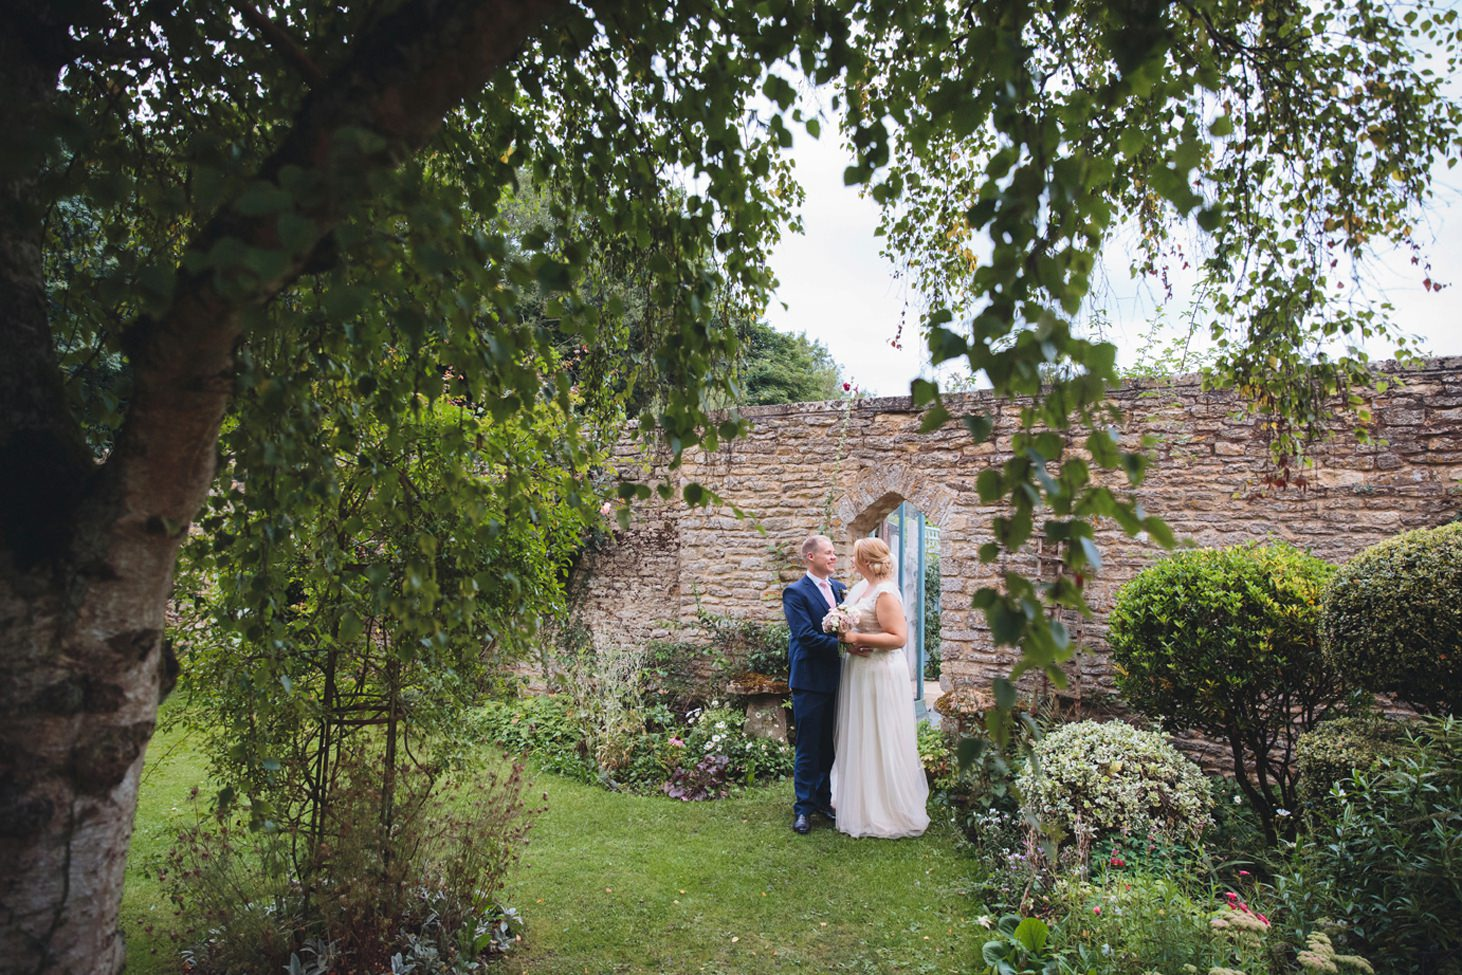 oxfordshire wedding photography bride and groom in gardens